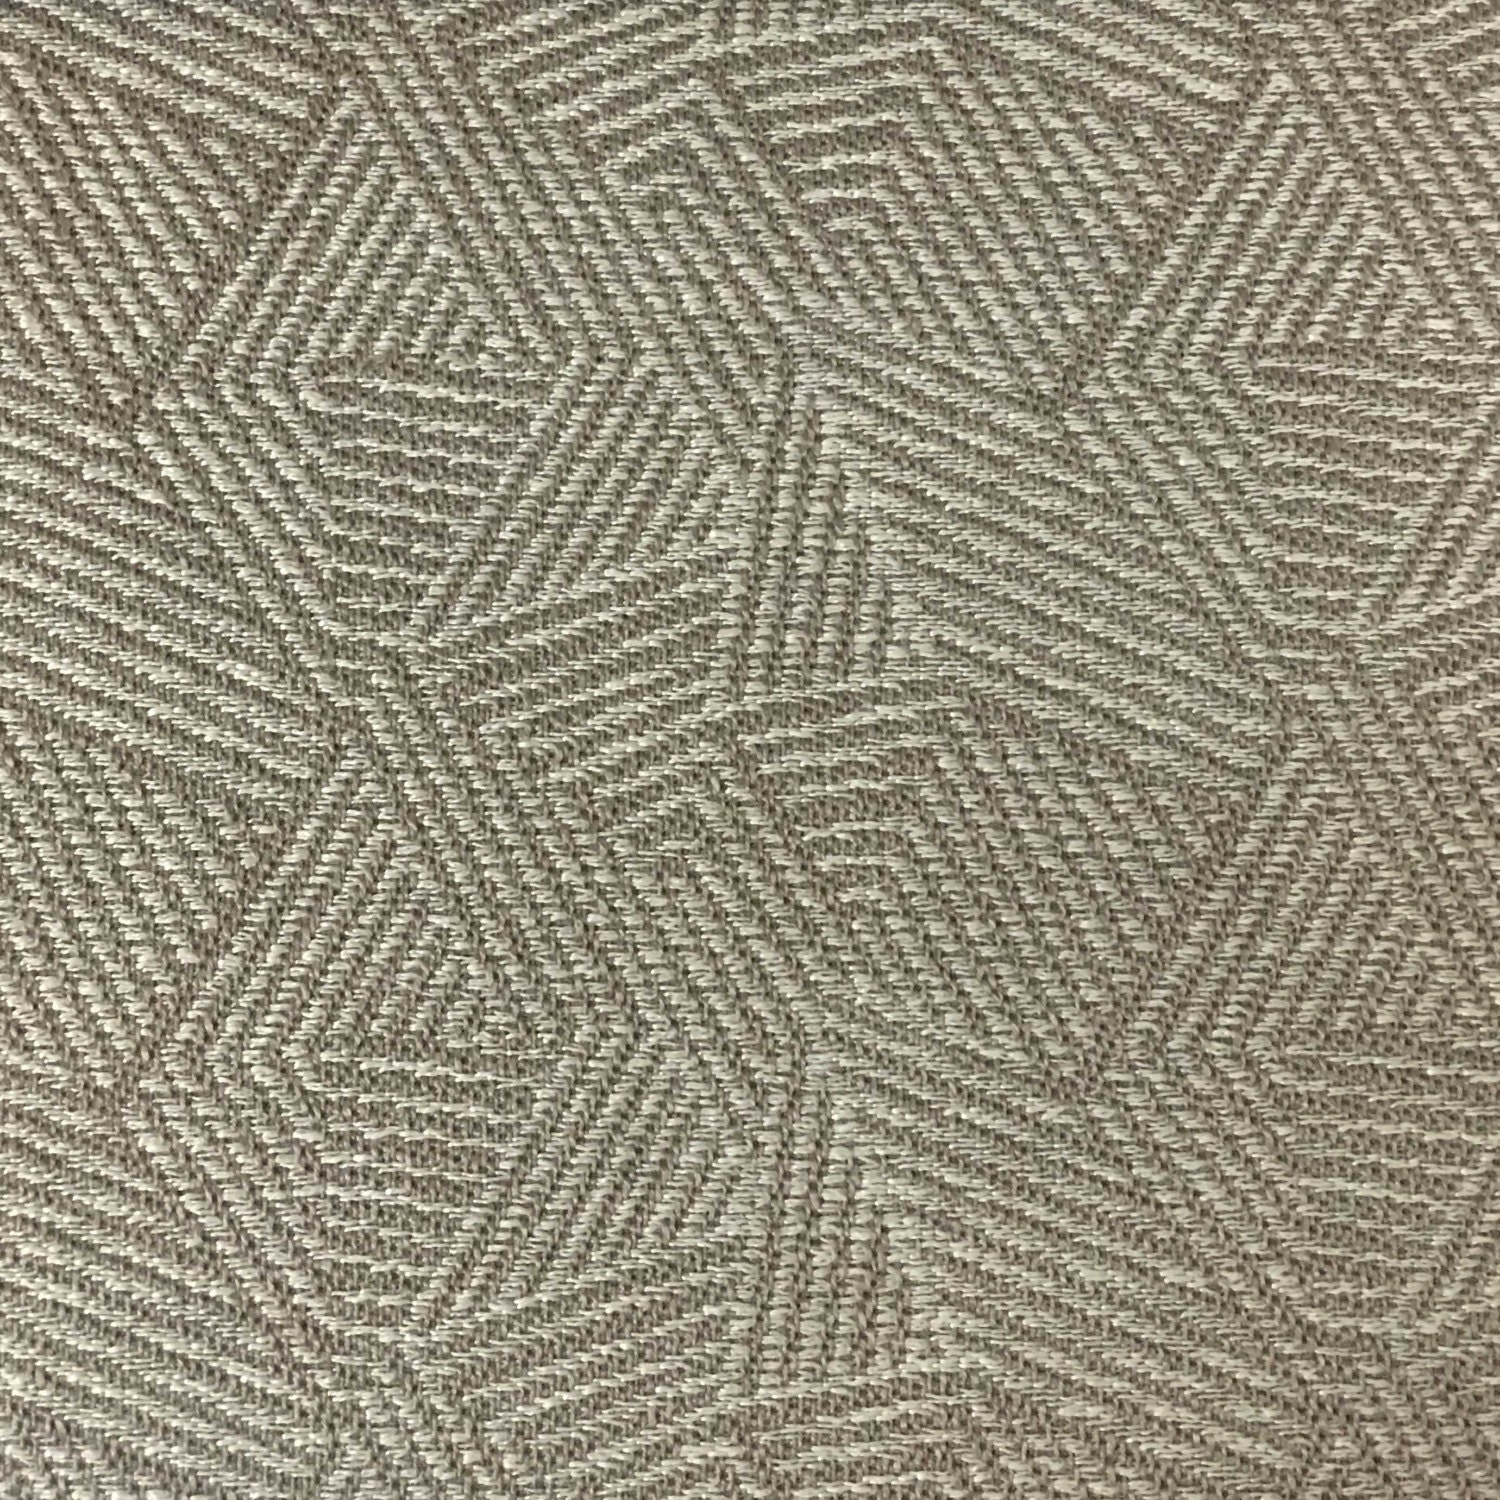 Upholstery fabric enford linen jacquard fabric woven for Jacquard fabric